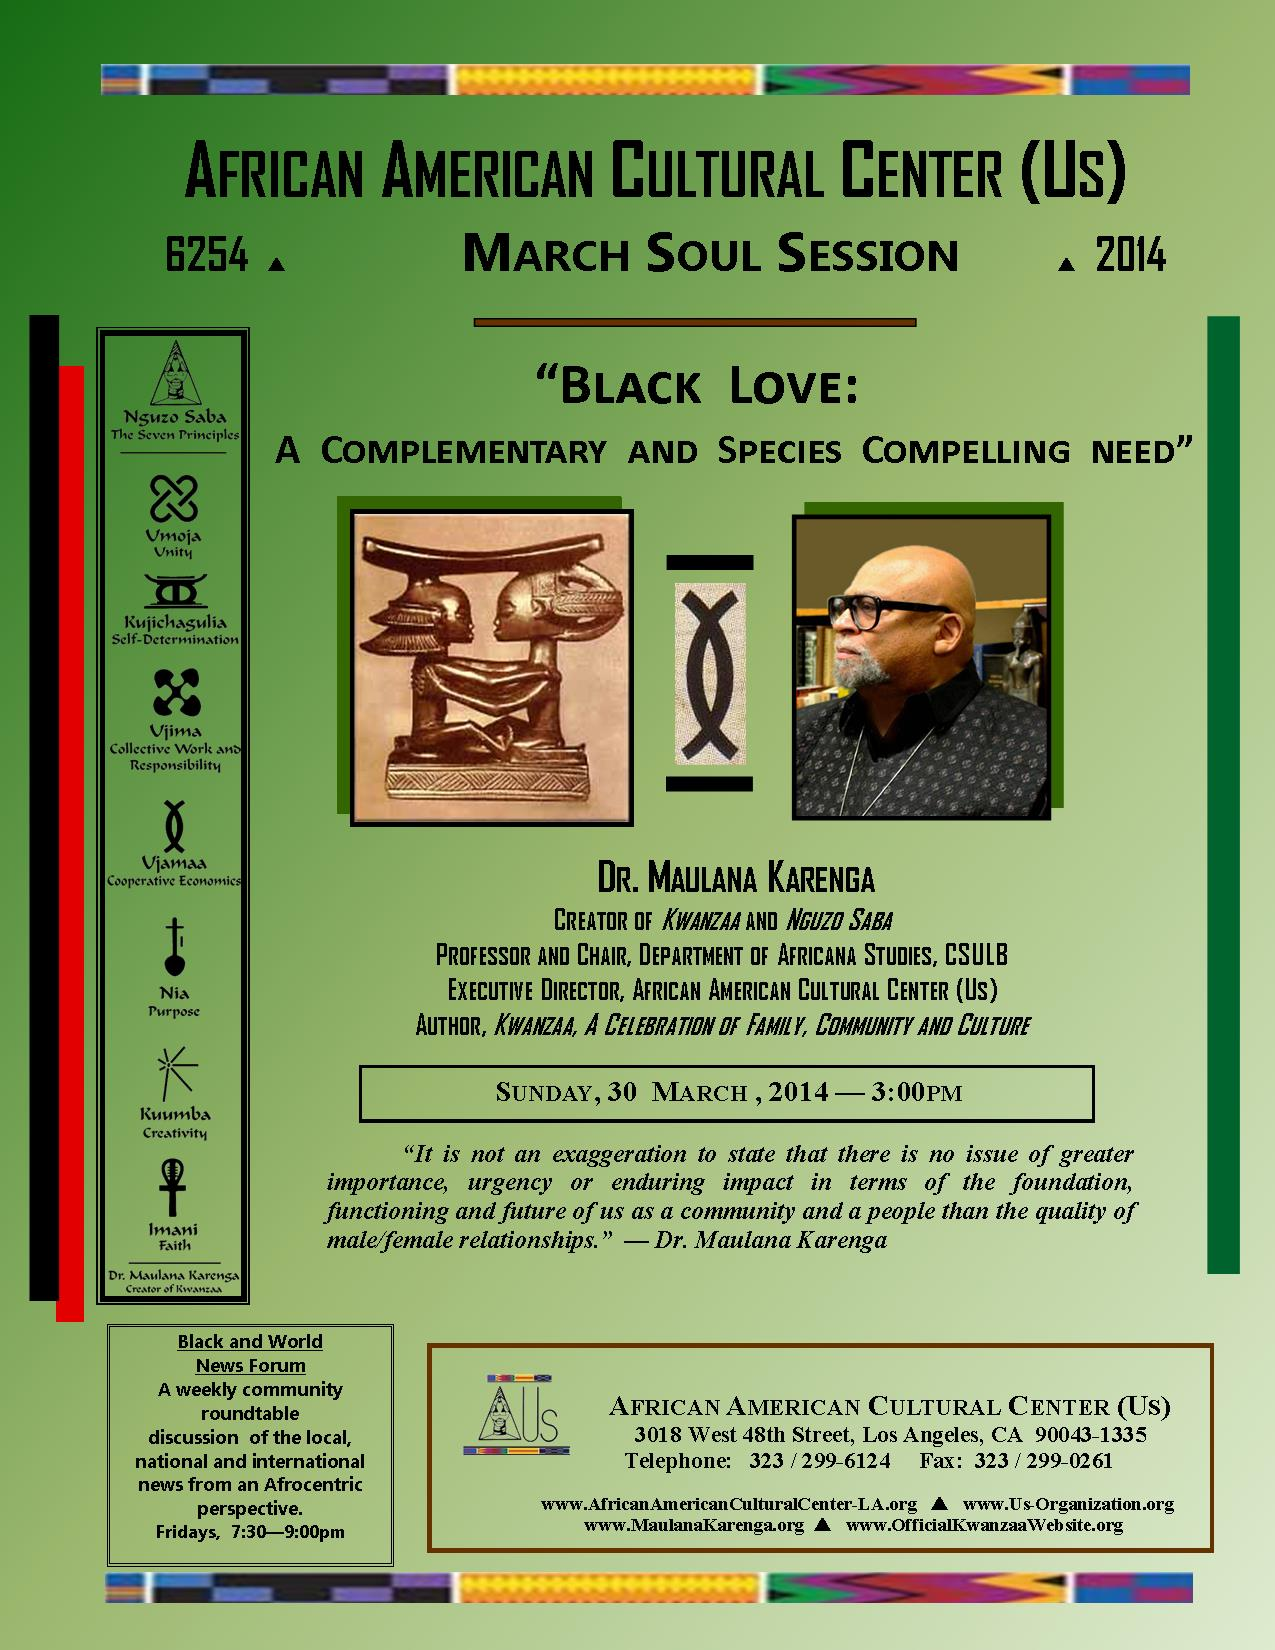 03-30-14 Dr. Maulana Karenga--Black Love